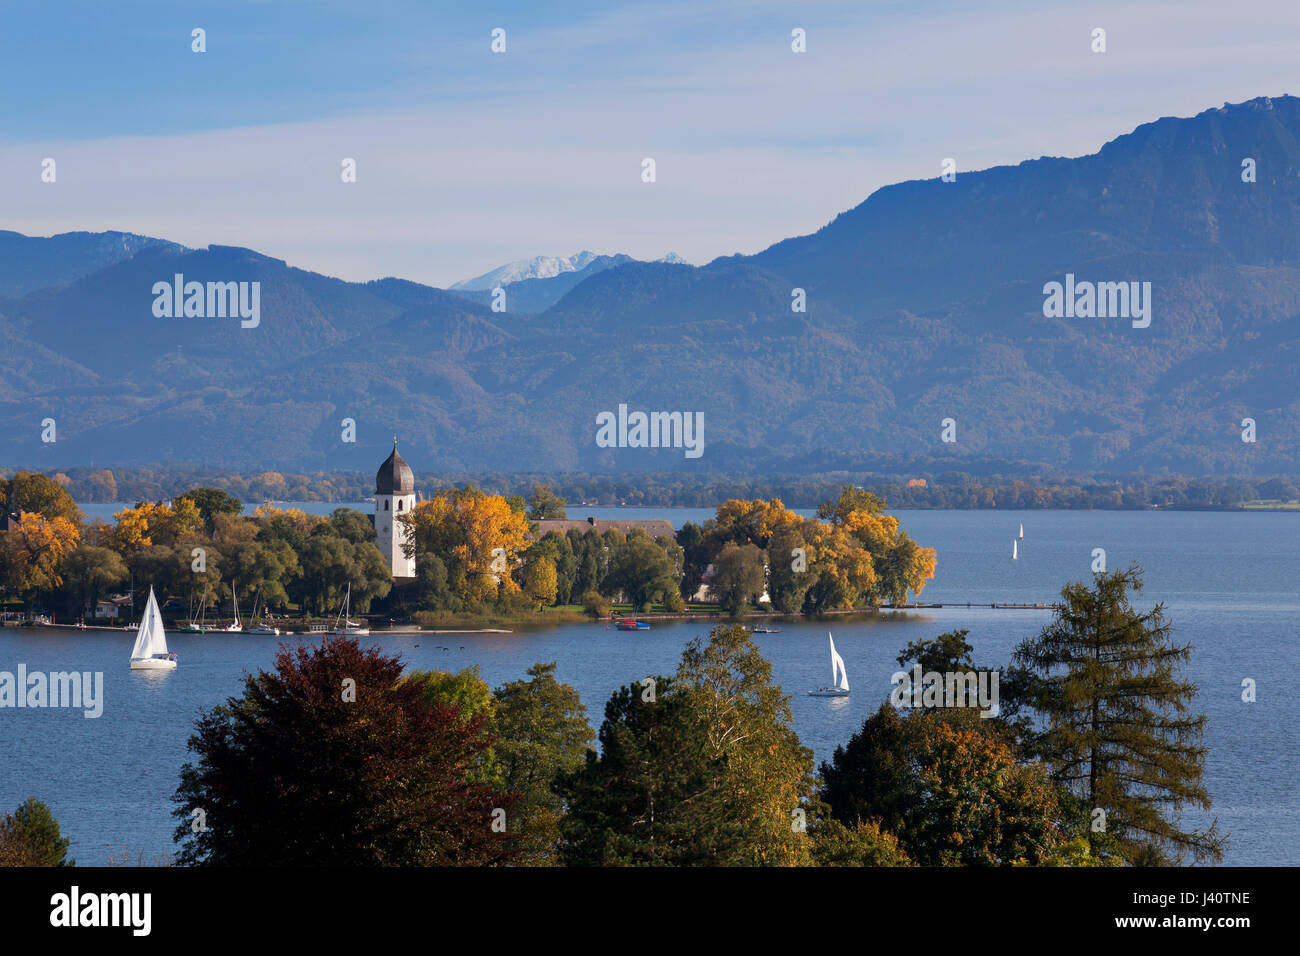 Sailing boats on Chiemsee at Fraueninsel, near Gstadt, Chiemsee, Chiemgau region, Bavaria, Germany Stock Photo